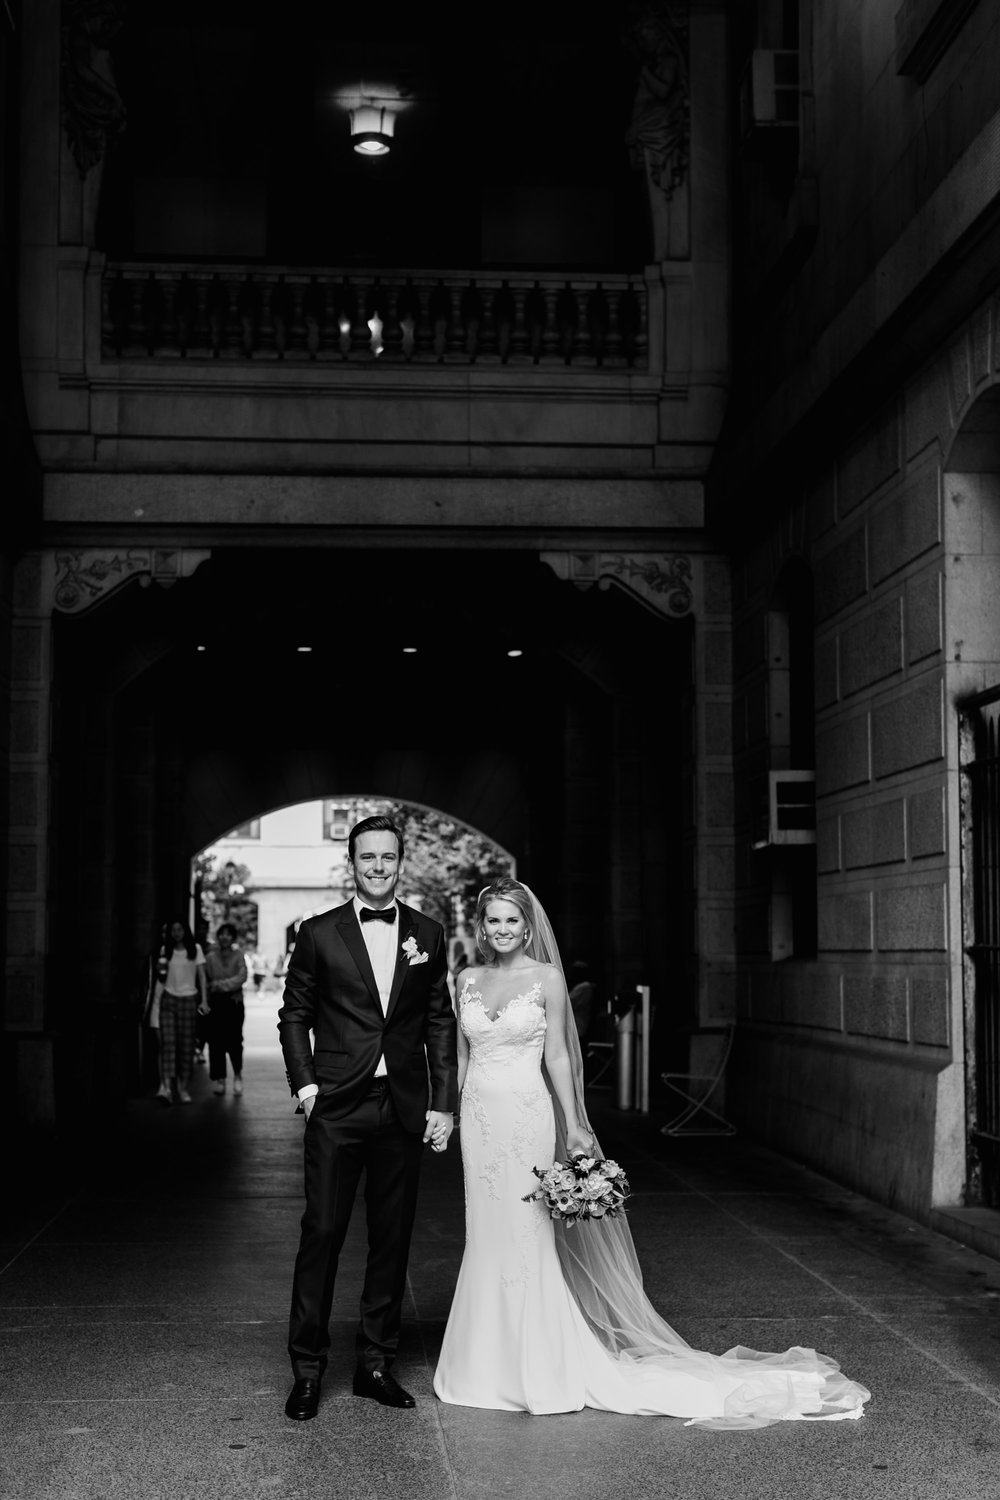 photography-wedding-weddings-natural-candid-union league-philadelphia-black tie-city hall-broad street-editorial-modern-fine-art-19.JPG